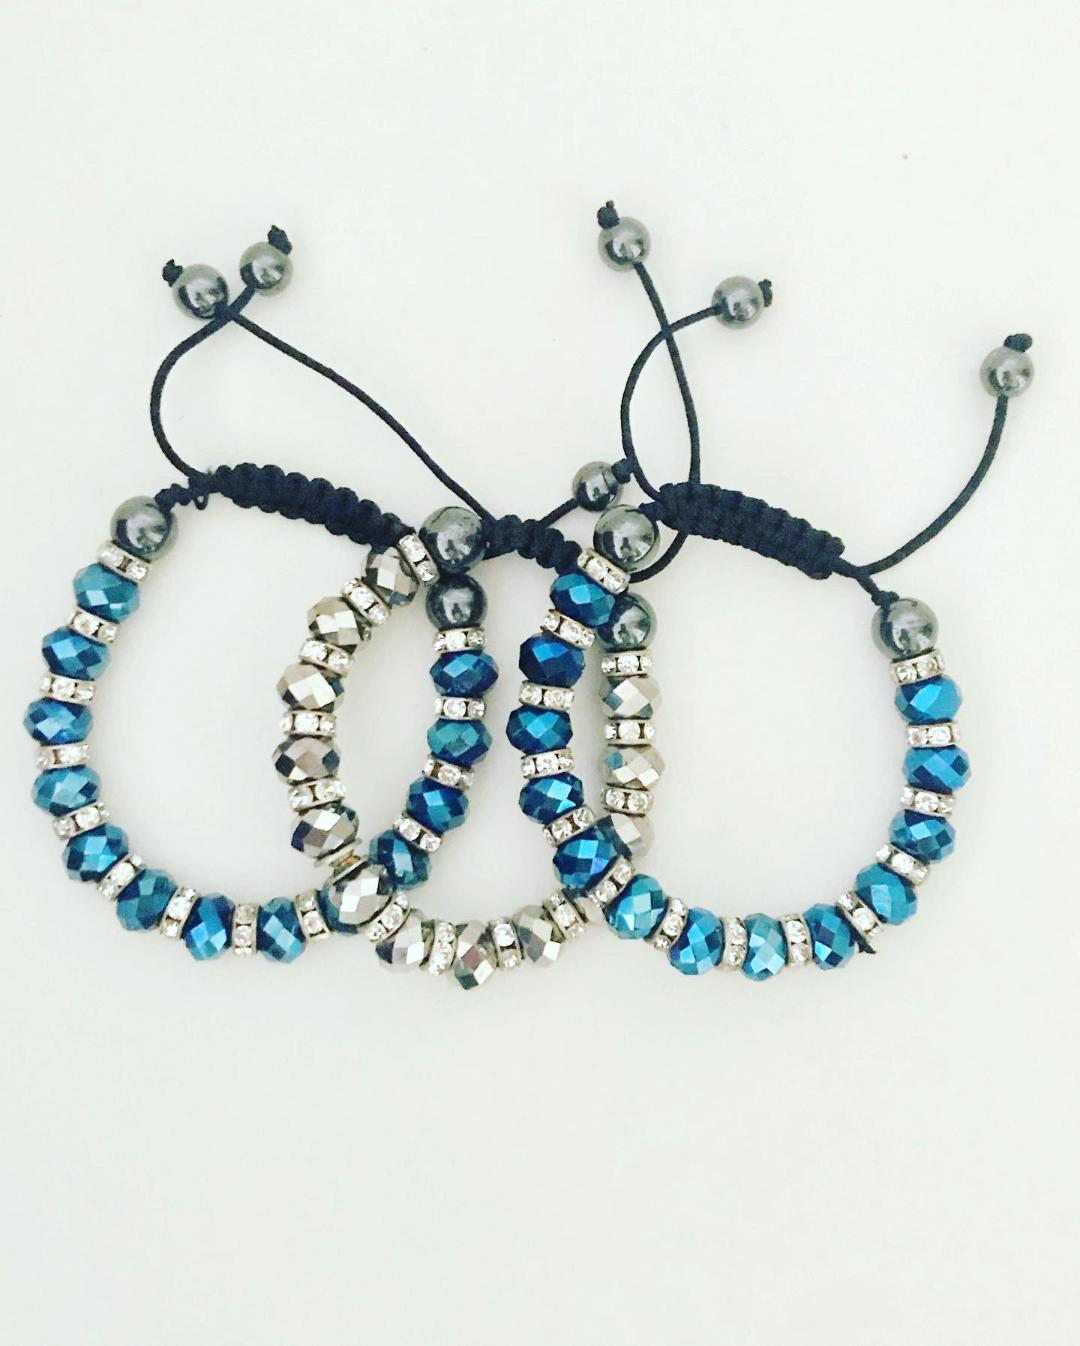 Little Blue Beads Bracelet